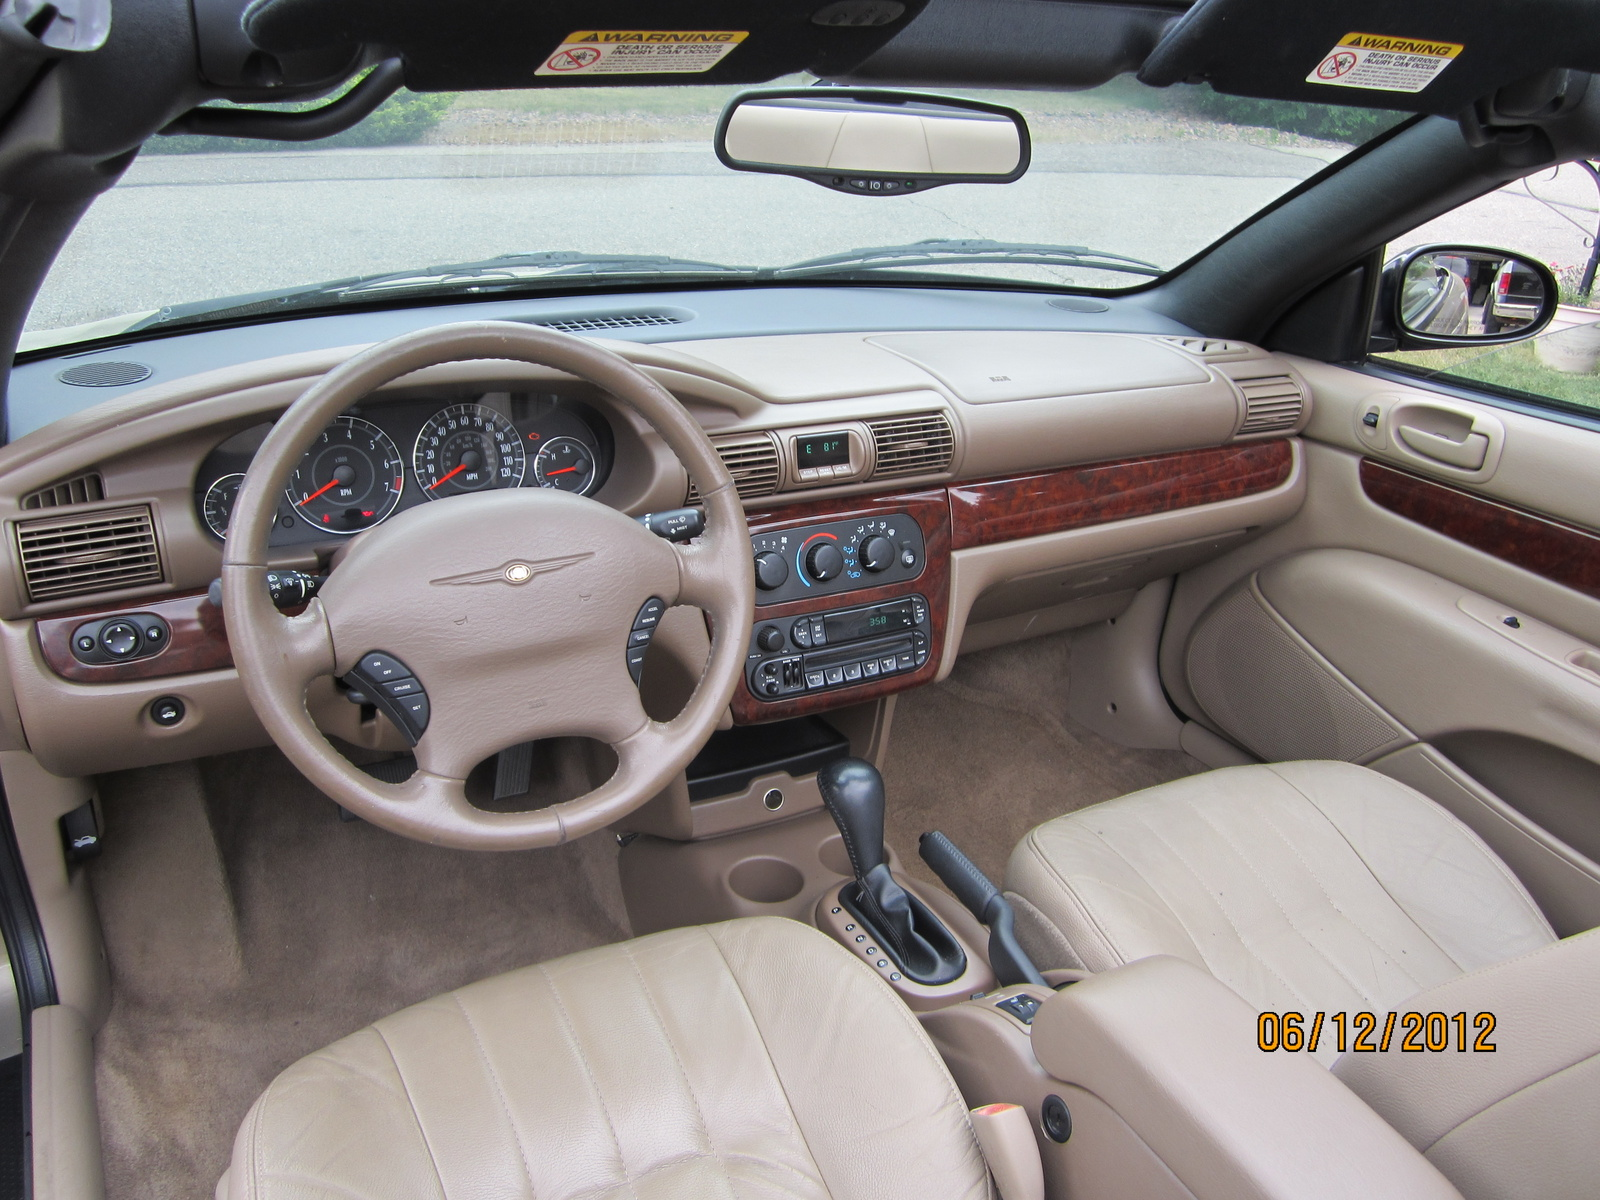 Chrysler Sebring interior #4